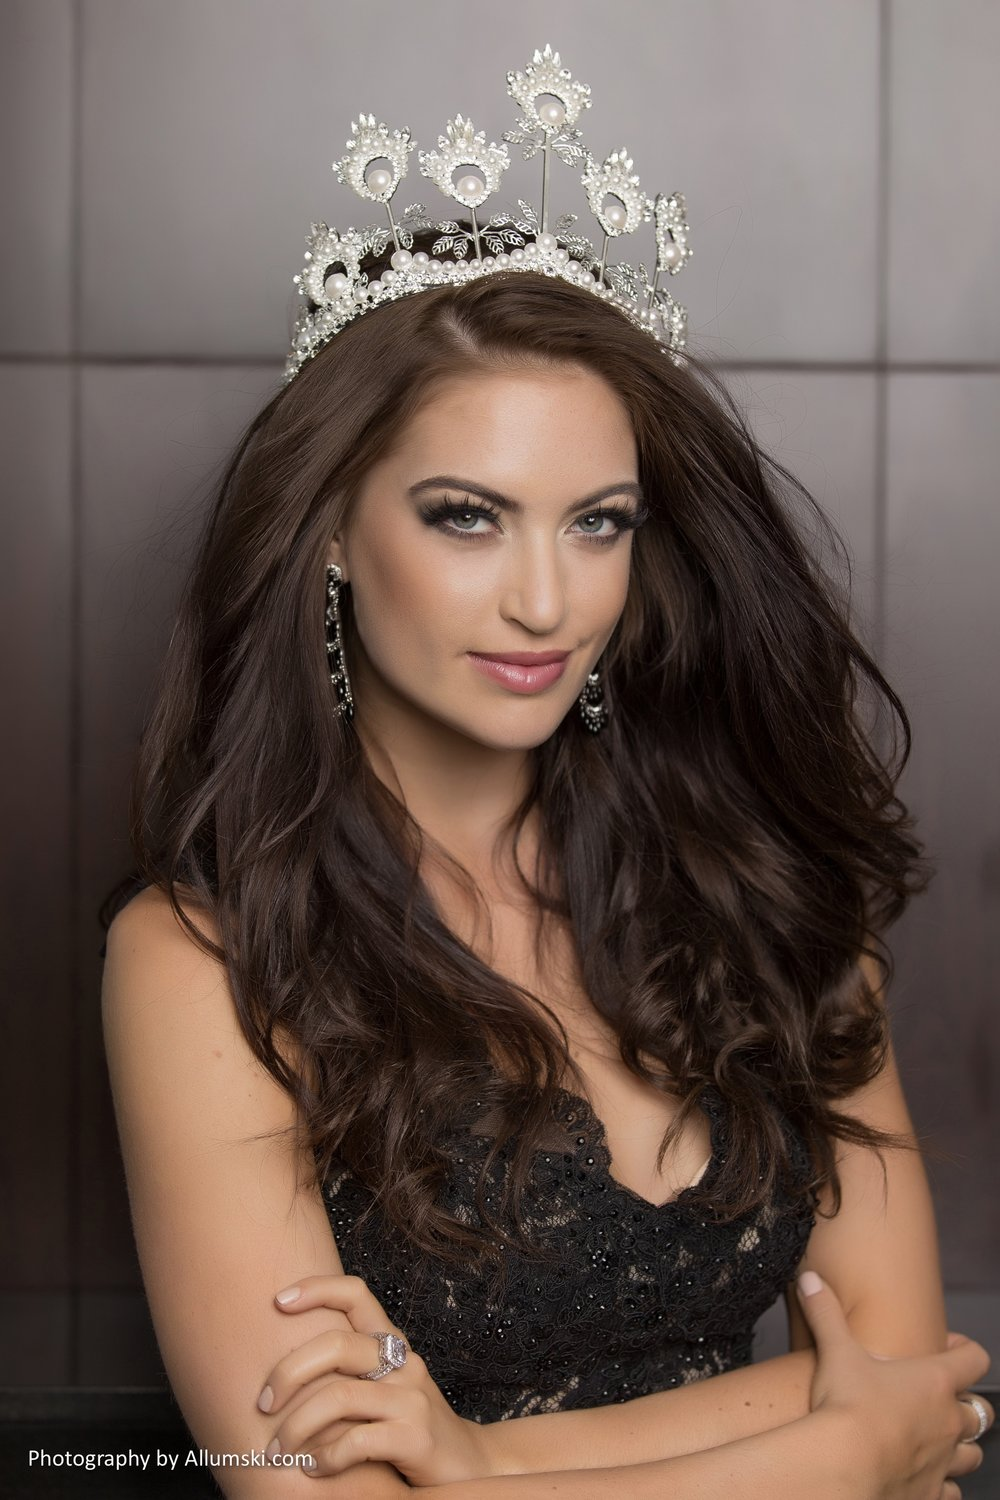 Siera Bearchell: Reigning Miss Universe Canada, Entrepreneur, Advocate for Métis Peoples